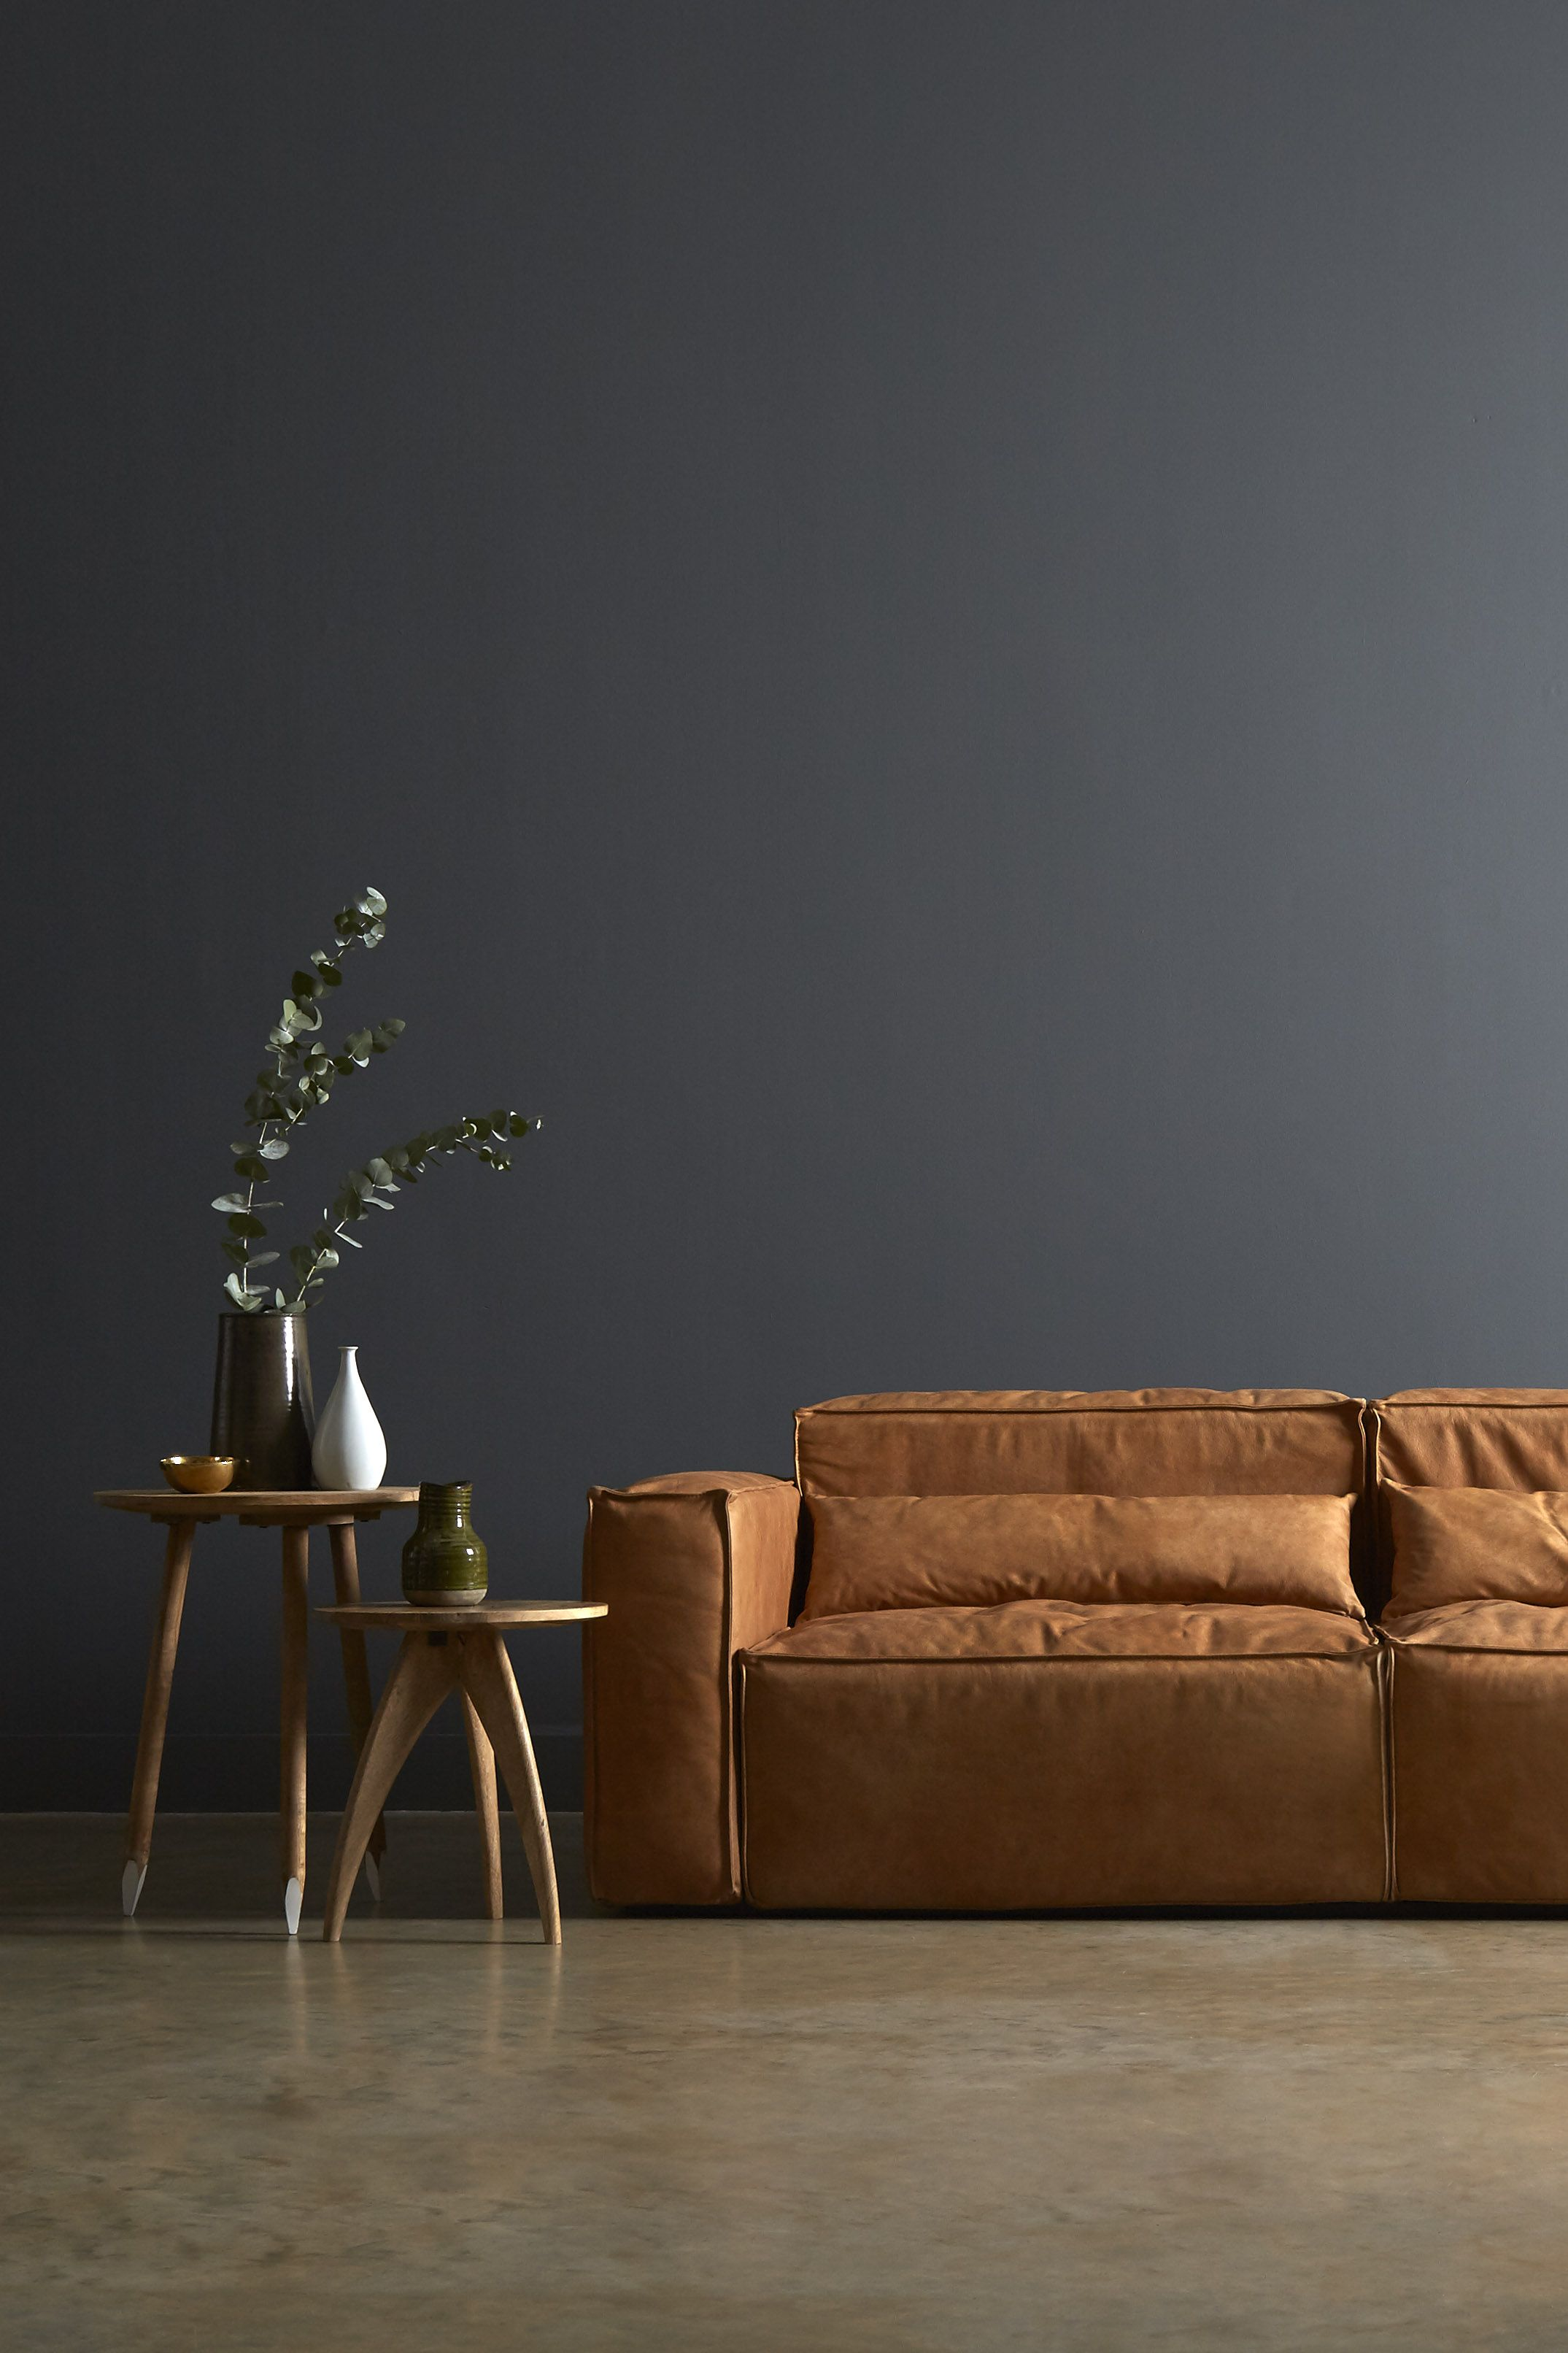 THE STYLE FIX, Featuring Our Bergen Sofa In Tan Leather. Accompanied By The  Oscar And Reid Side Tables.